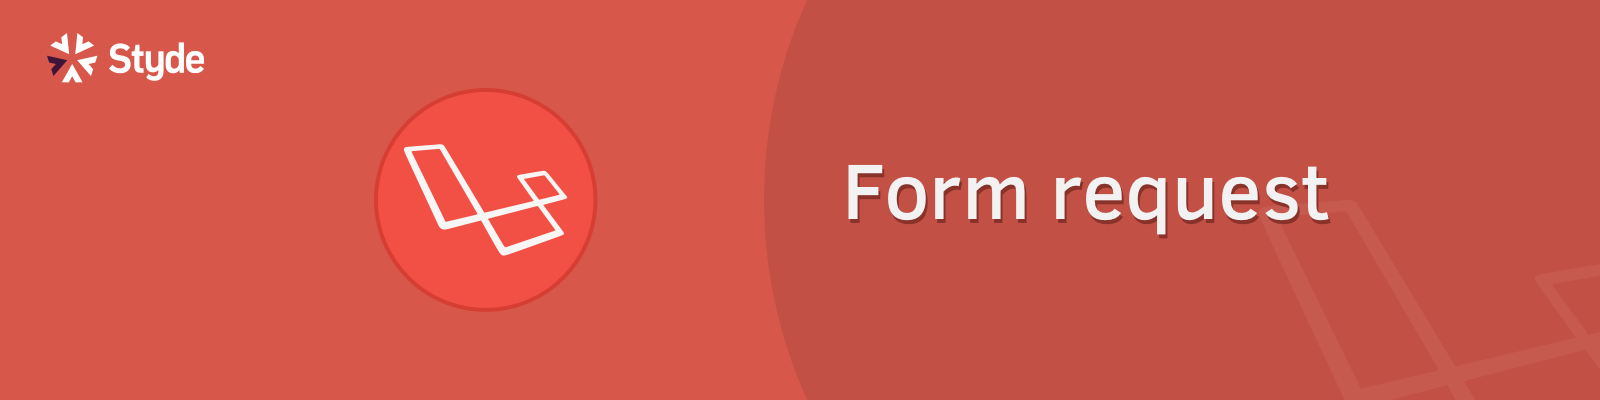 form request - Laravel